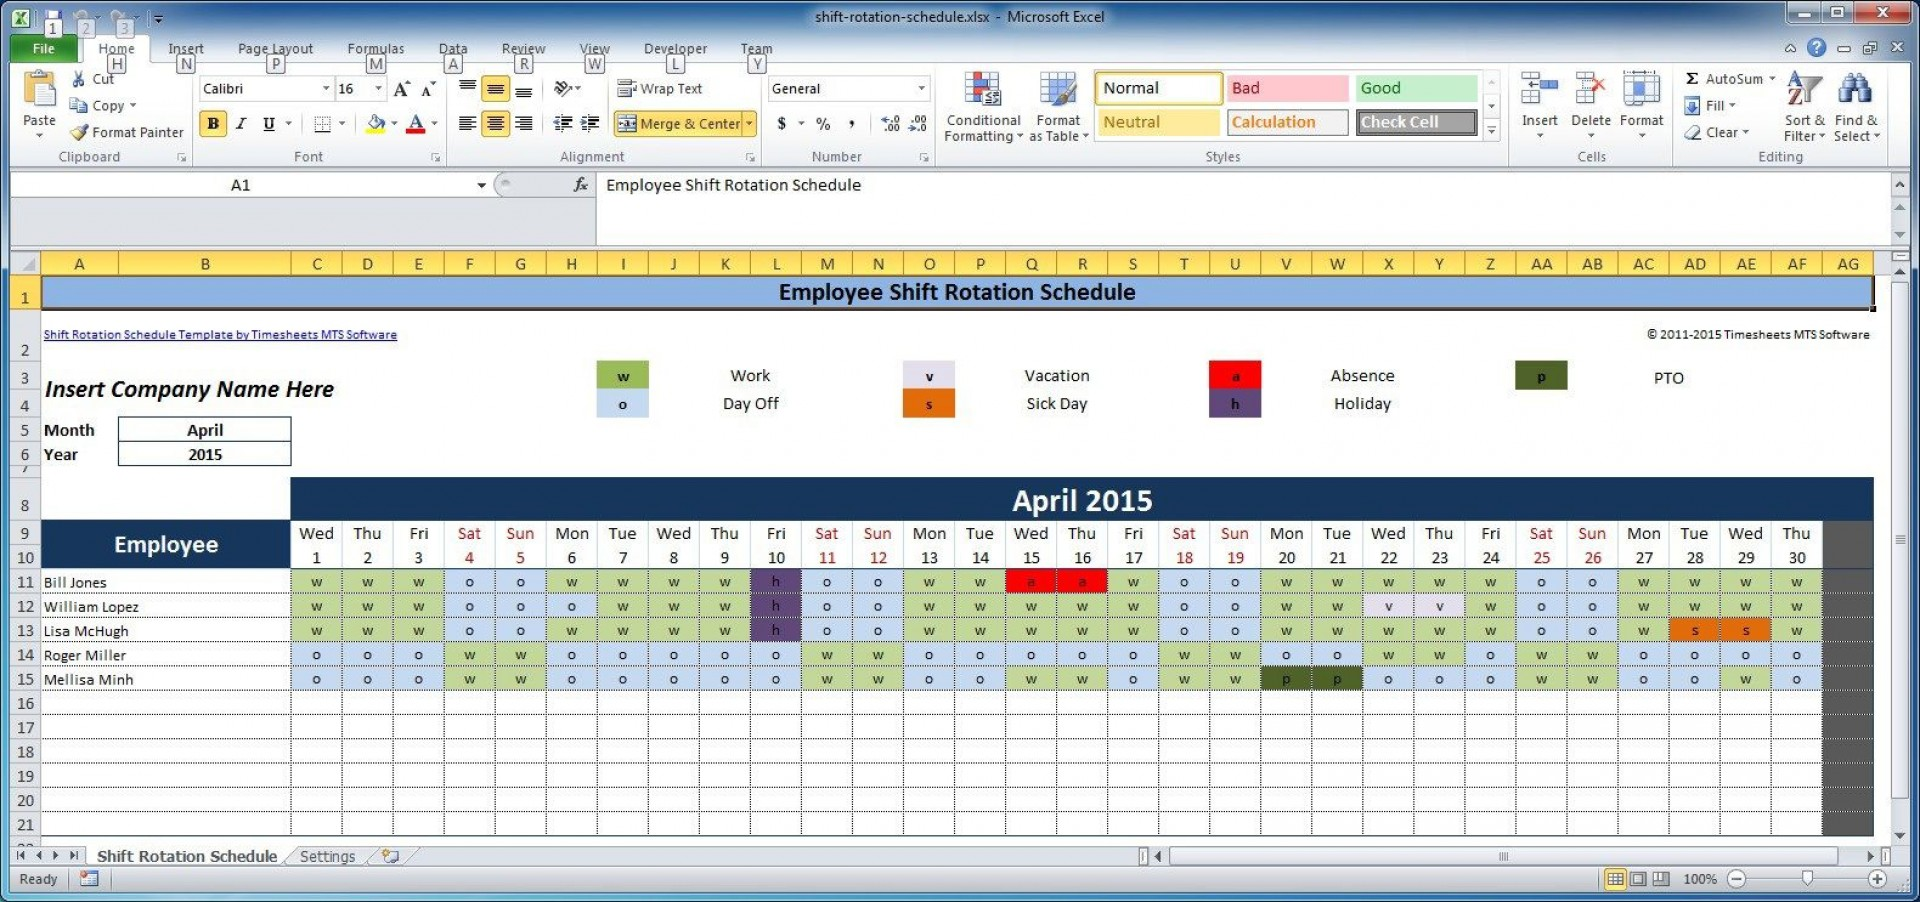 004 Surprising Free Employee Work Schedule Template High Def  Templates Monthly Excel Weekly Pdf1920